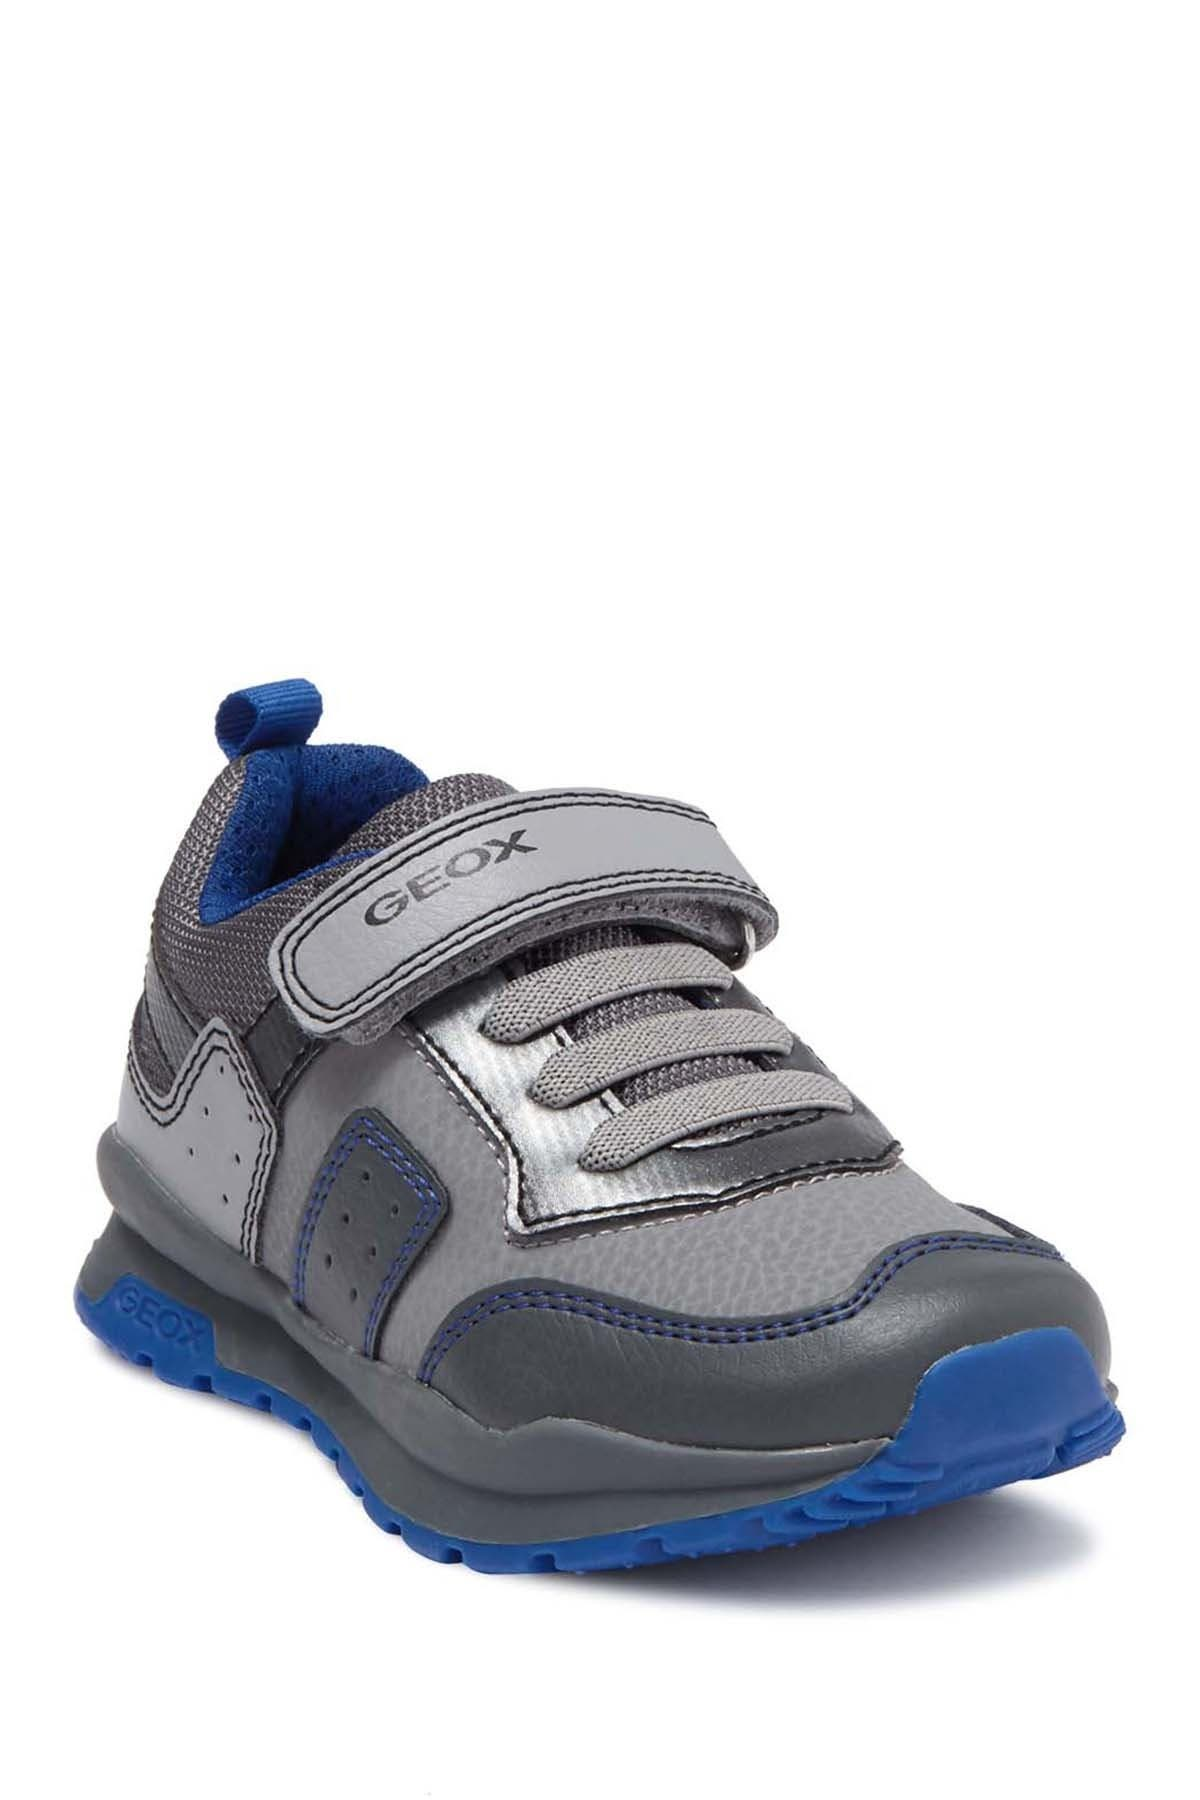 Image of GEOX Pavel Strap Sneaker